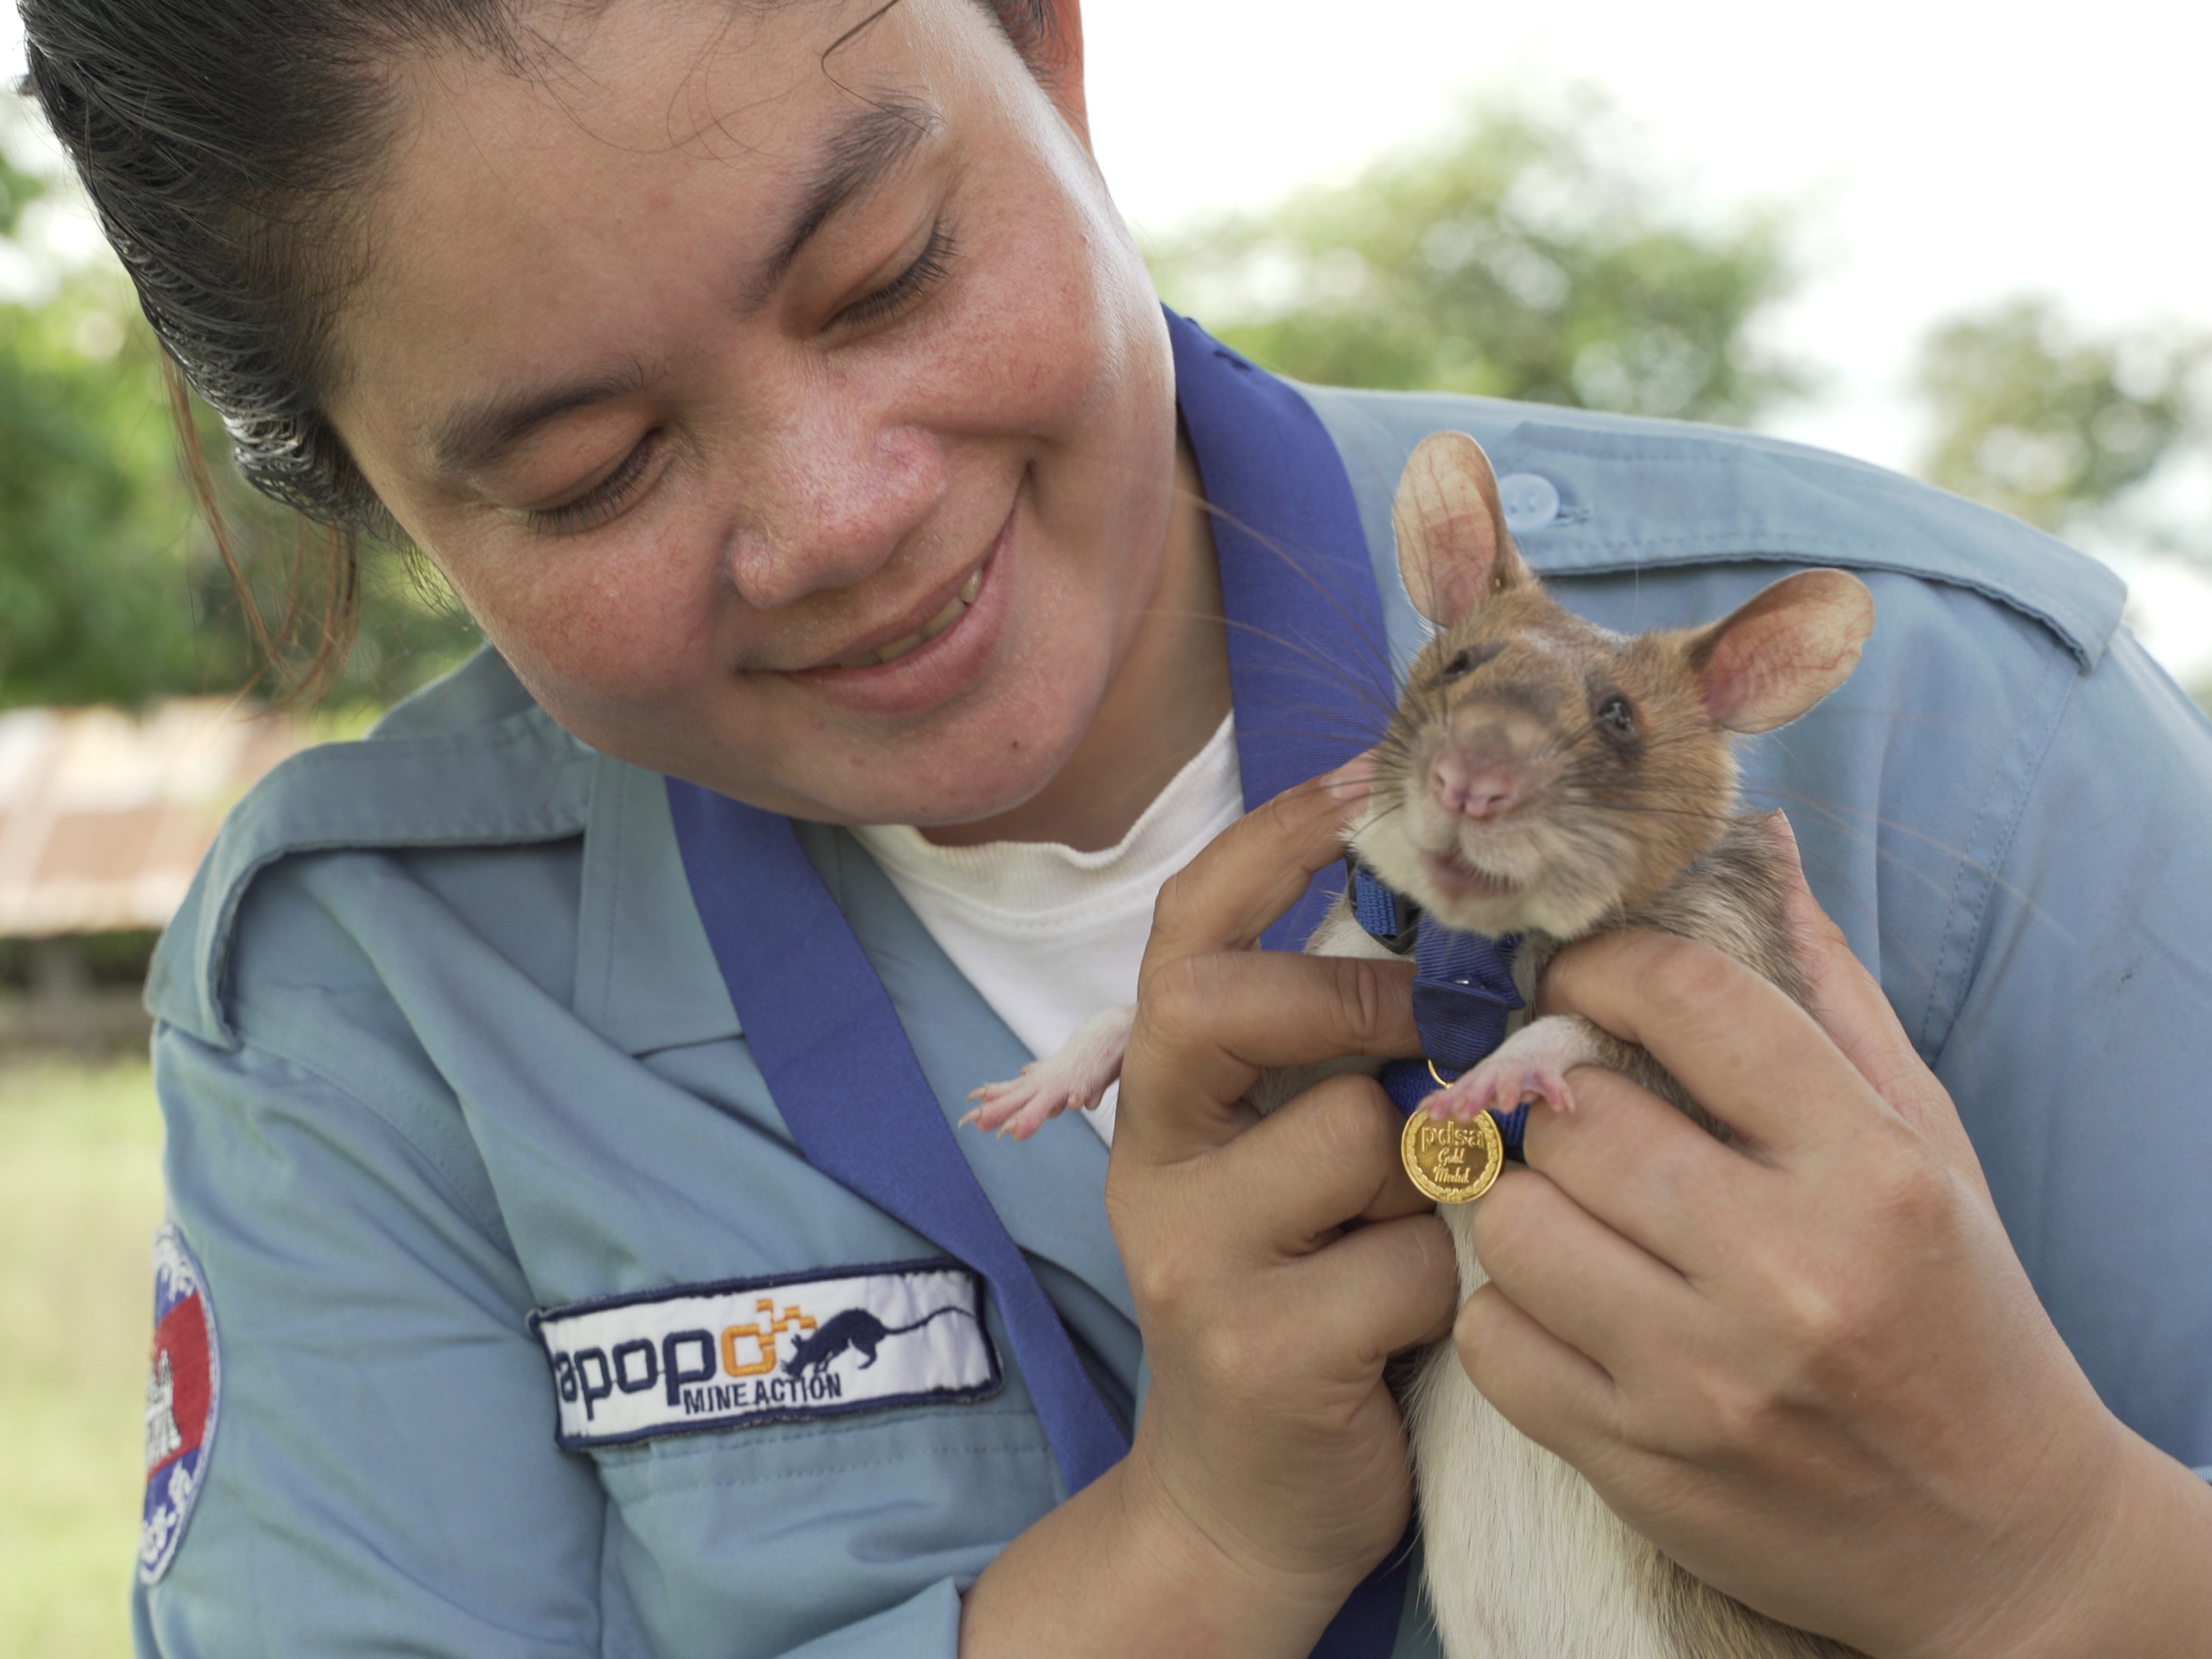 Magawa, a landmine detection rat, receives a miniature PDSA Gold Medal for his work detecting landmines and unexploded ordnance in Cambodia